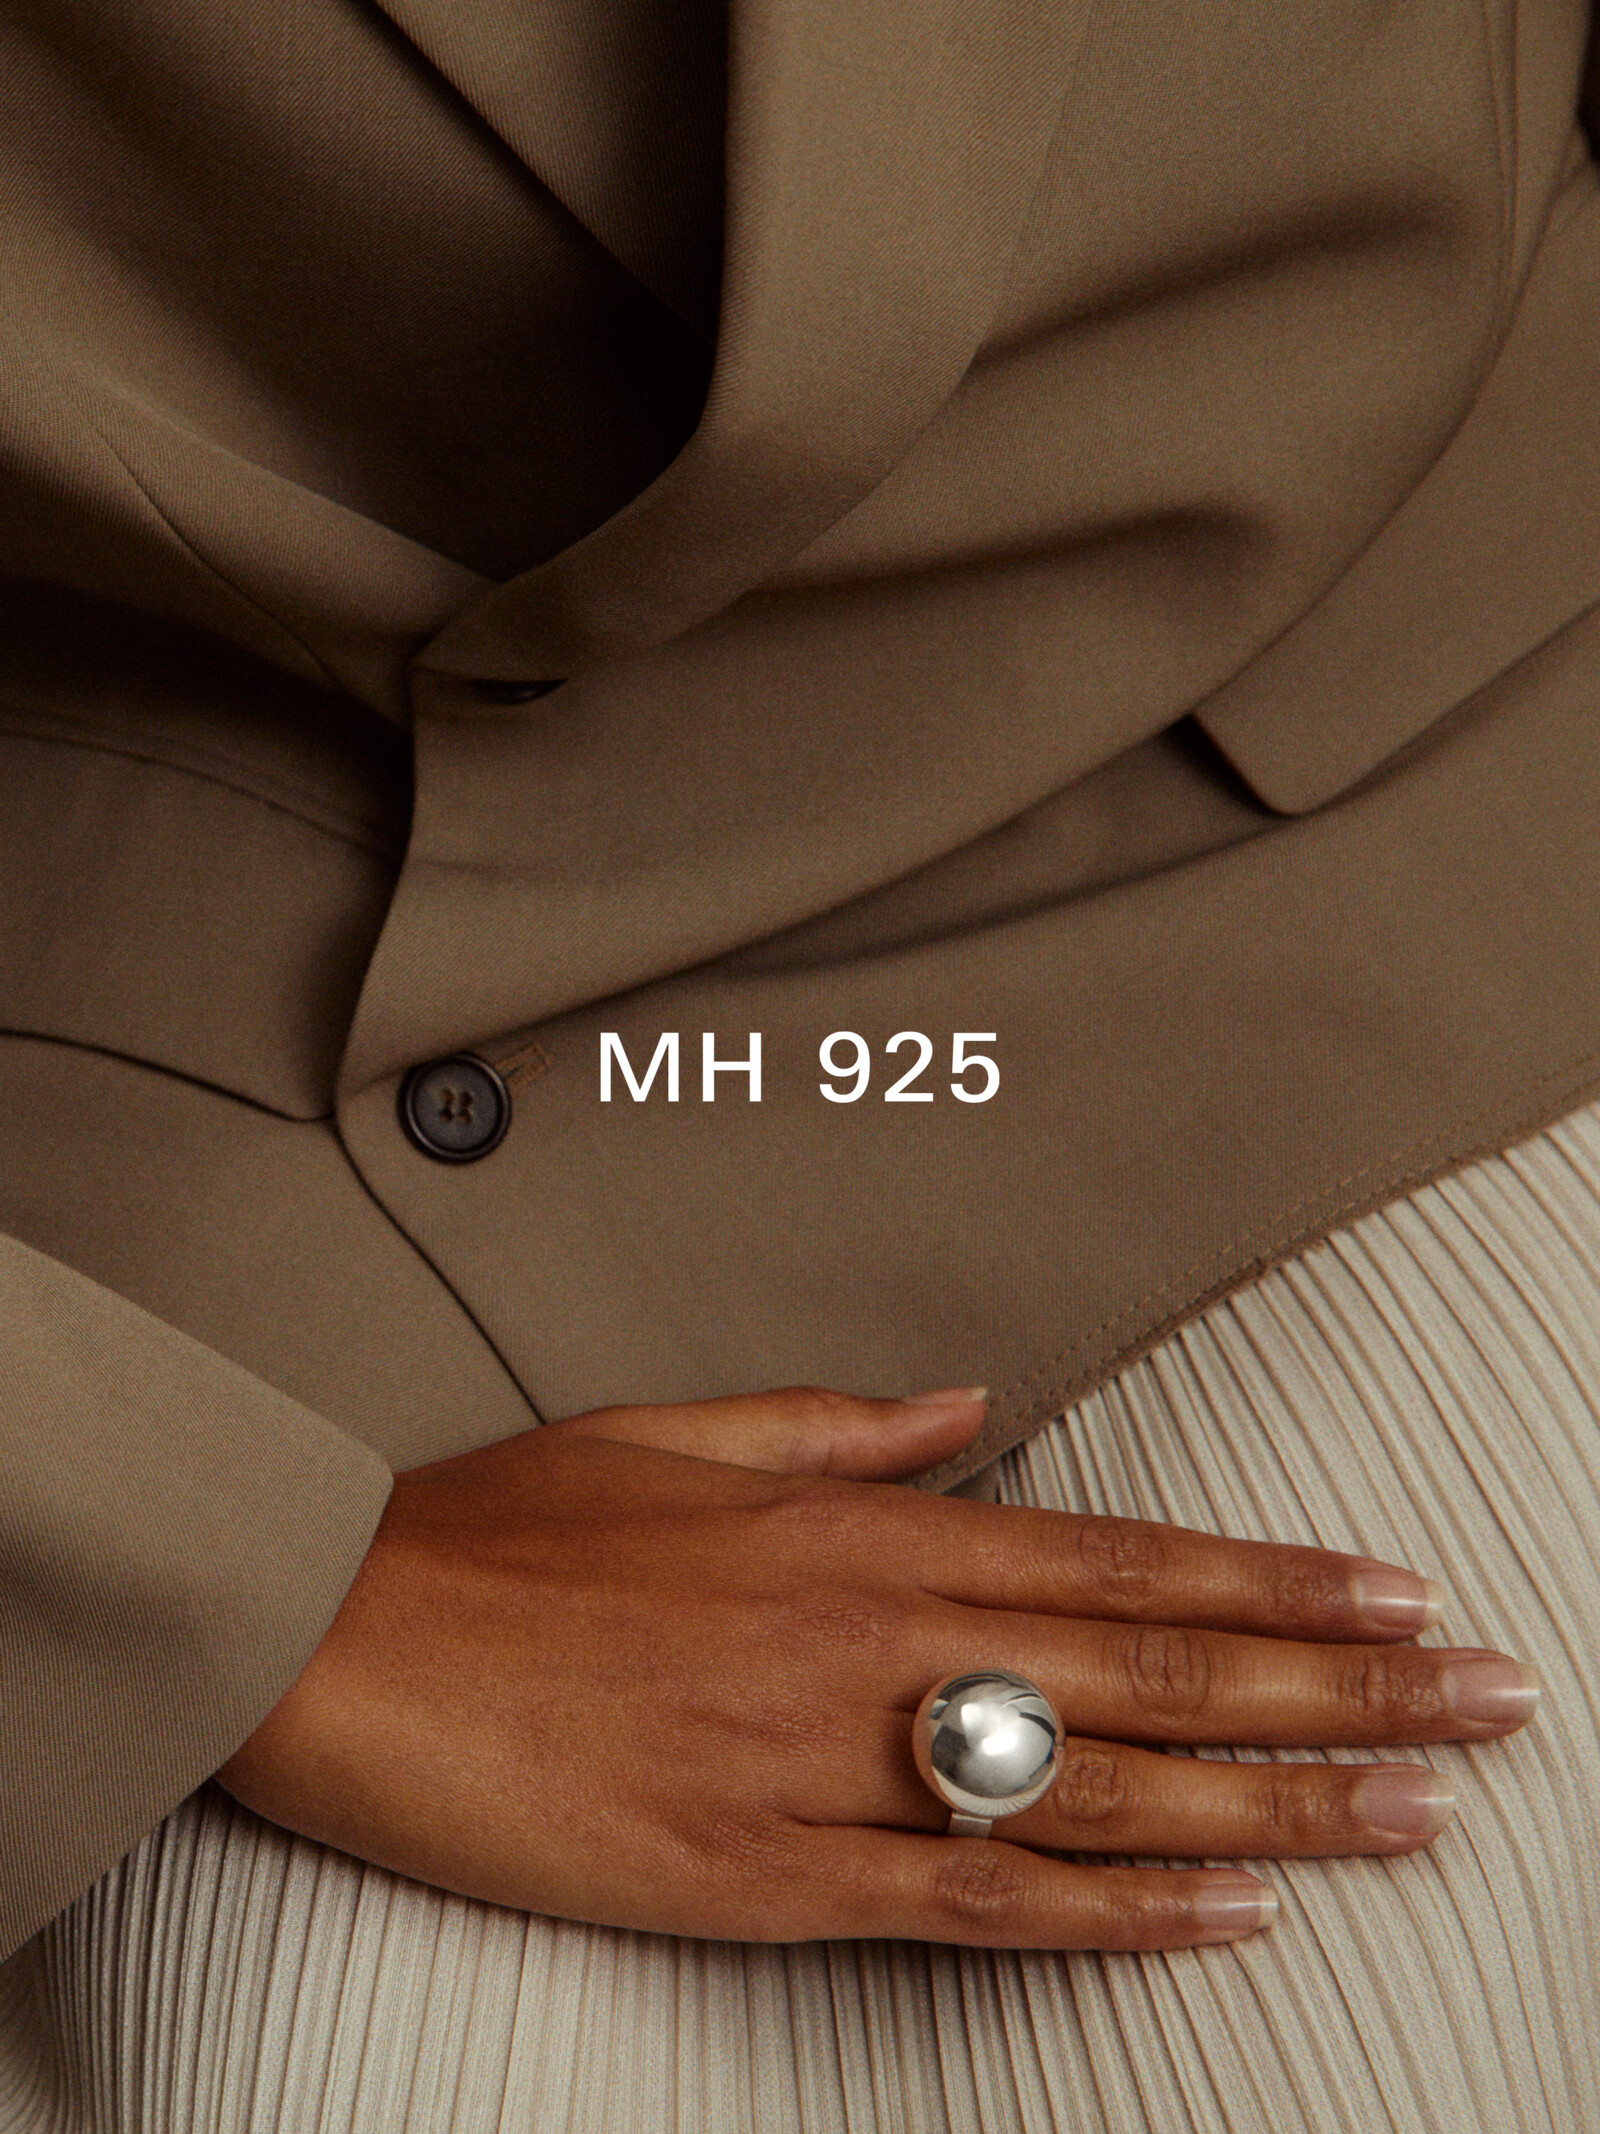 MH 925 images17